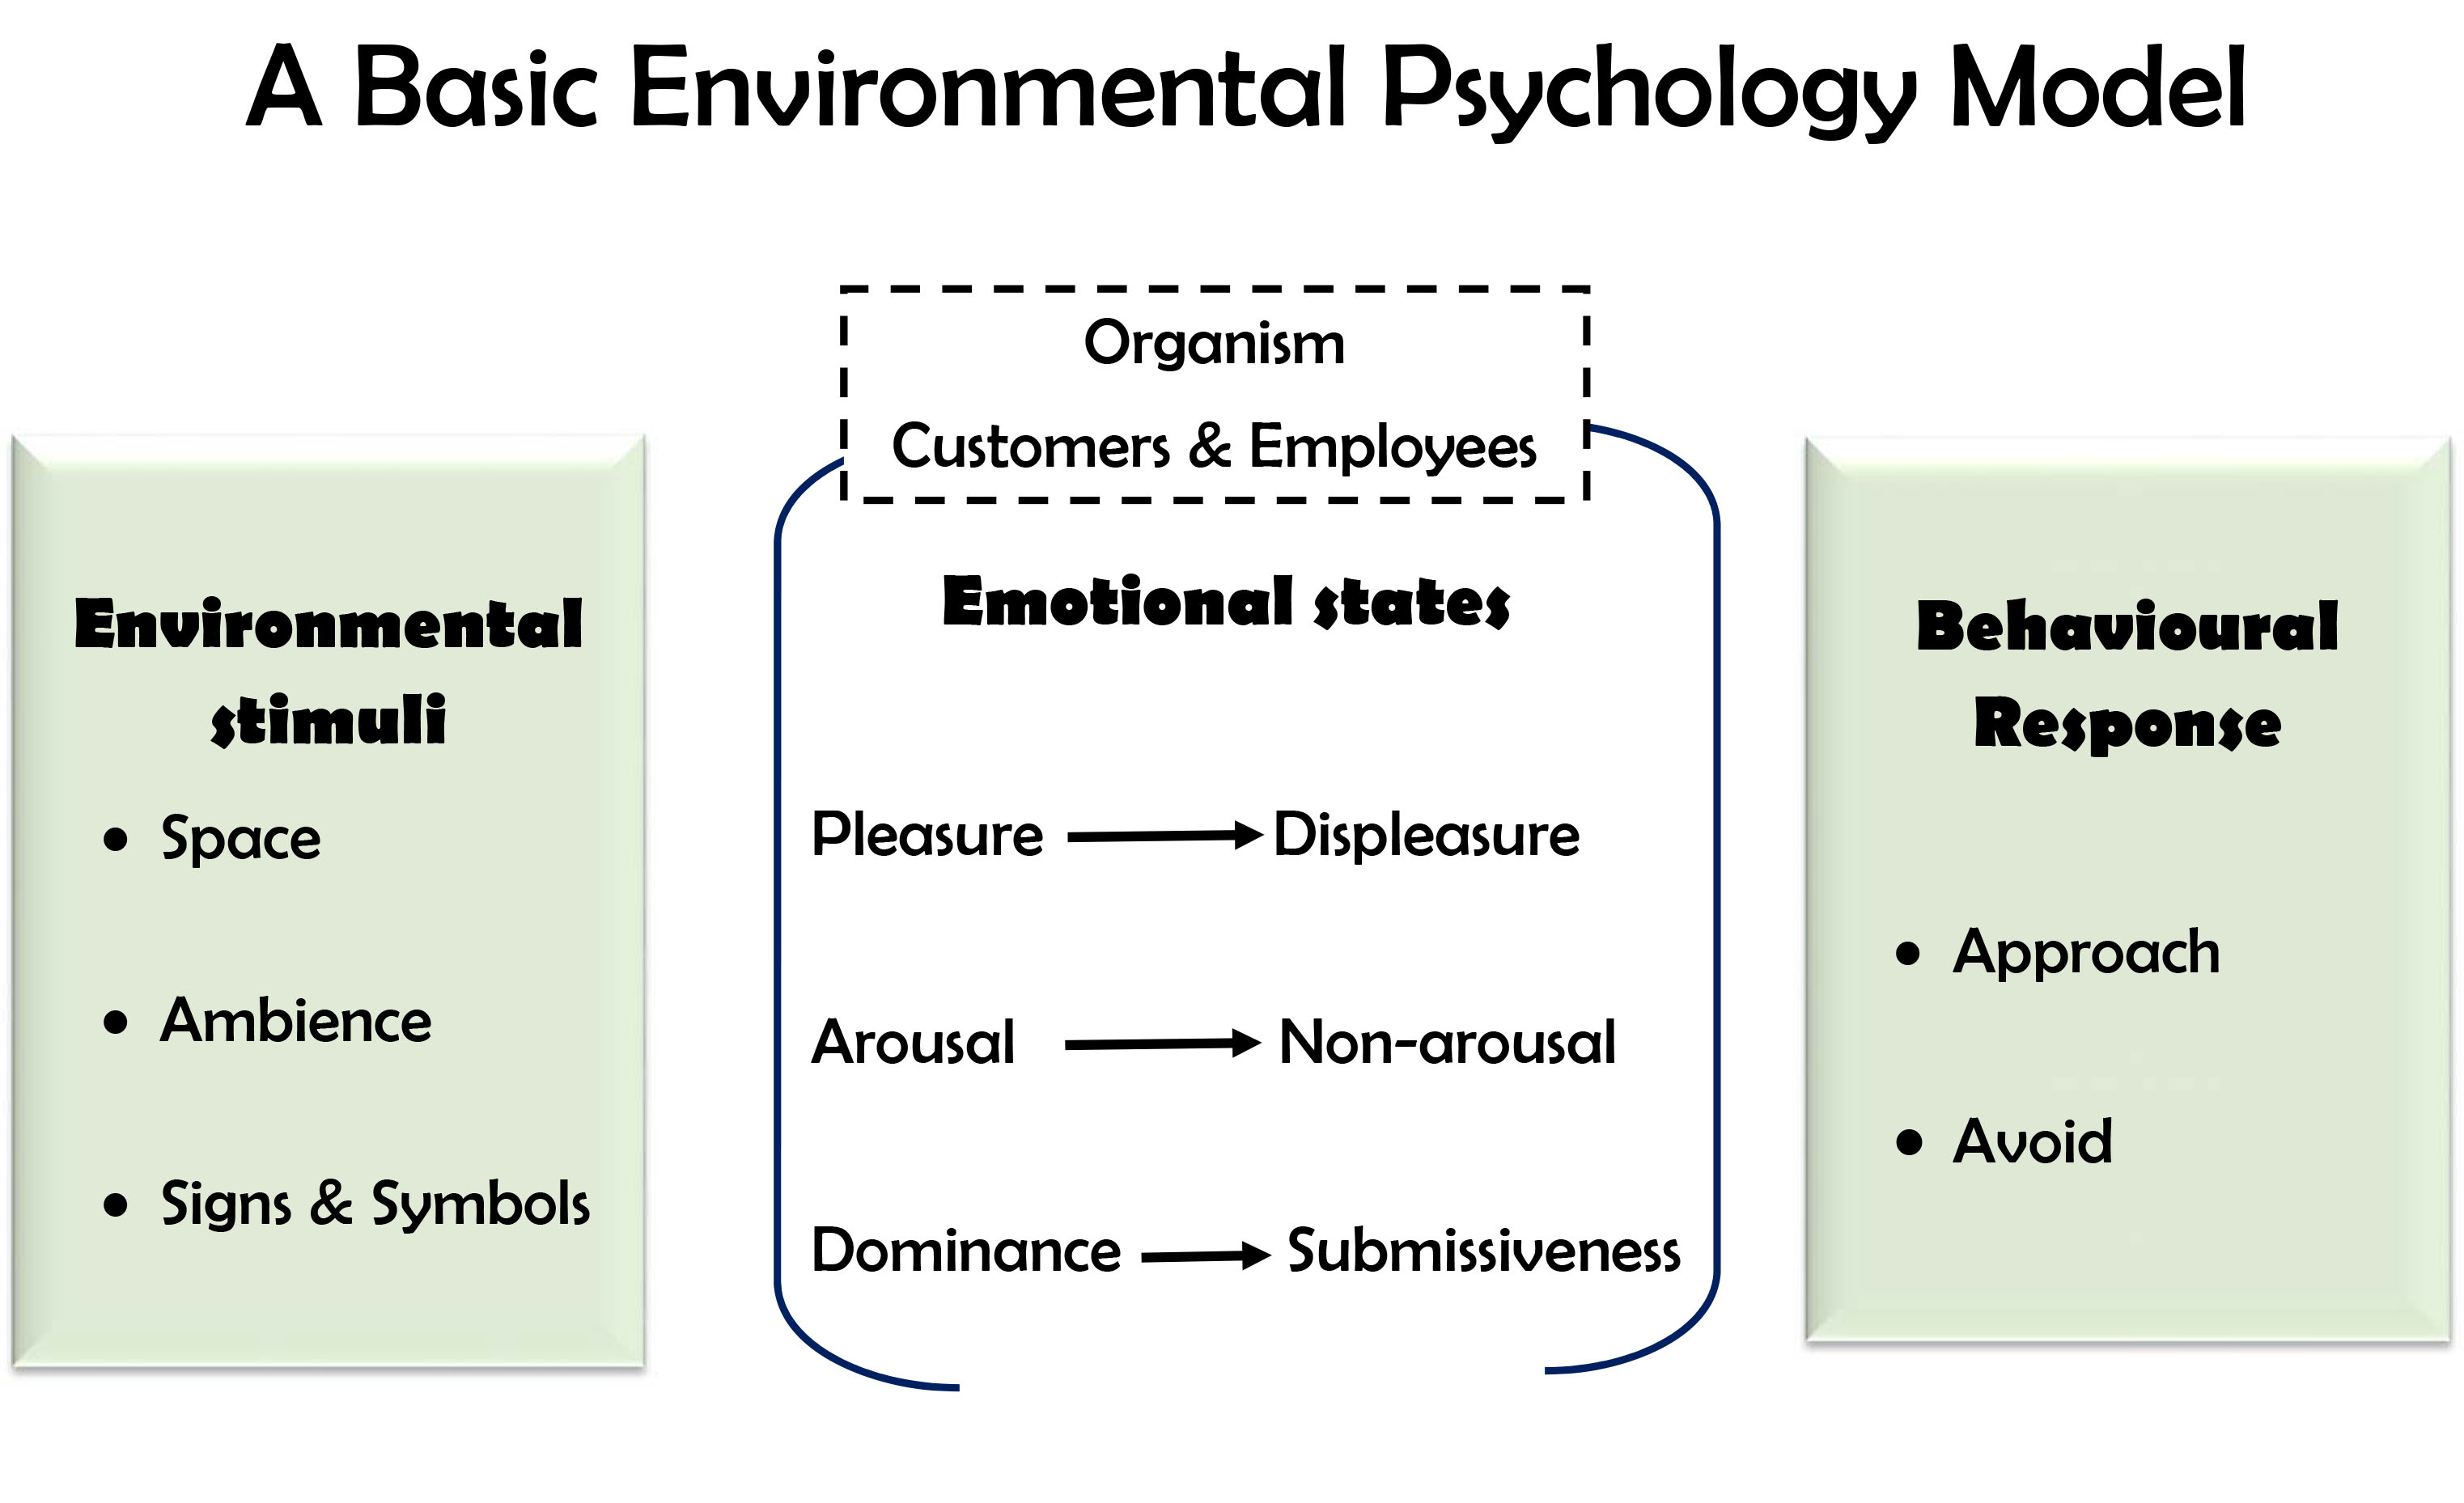 Services marketing wikipedia environmental psychology modelg malvernweather Images